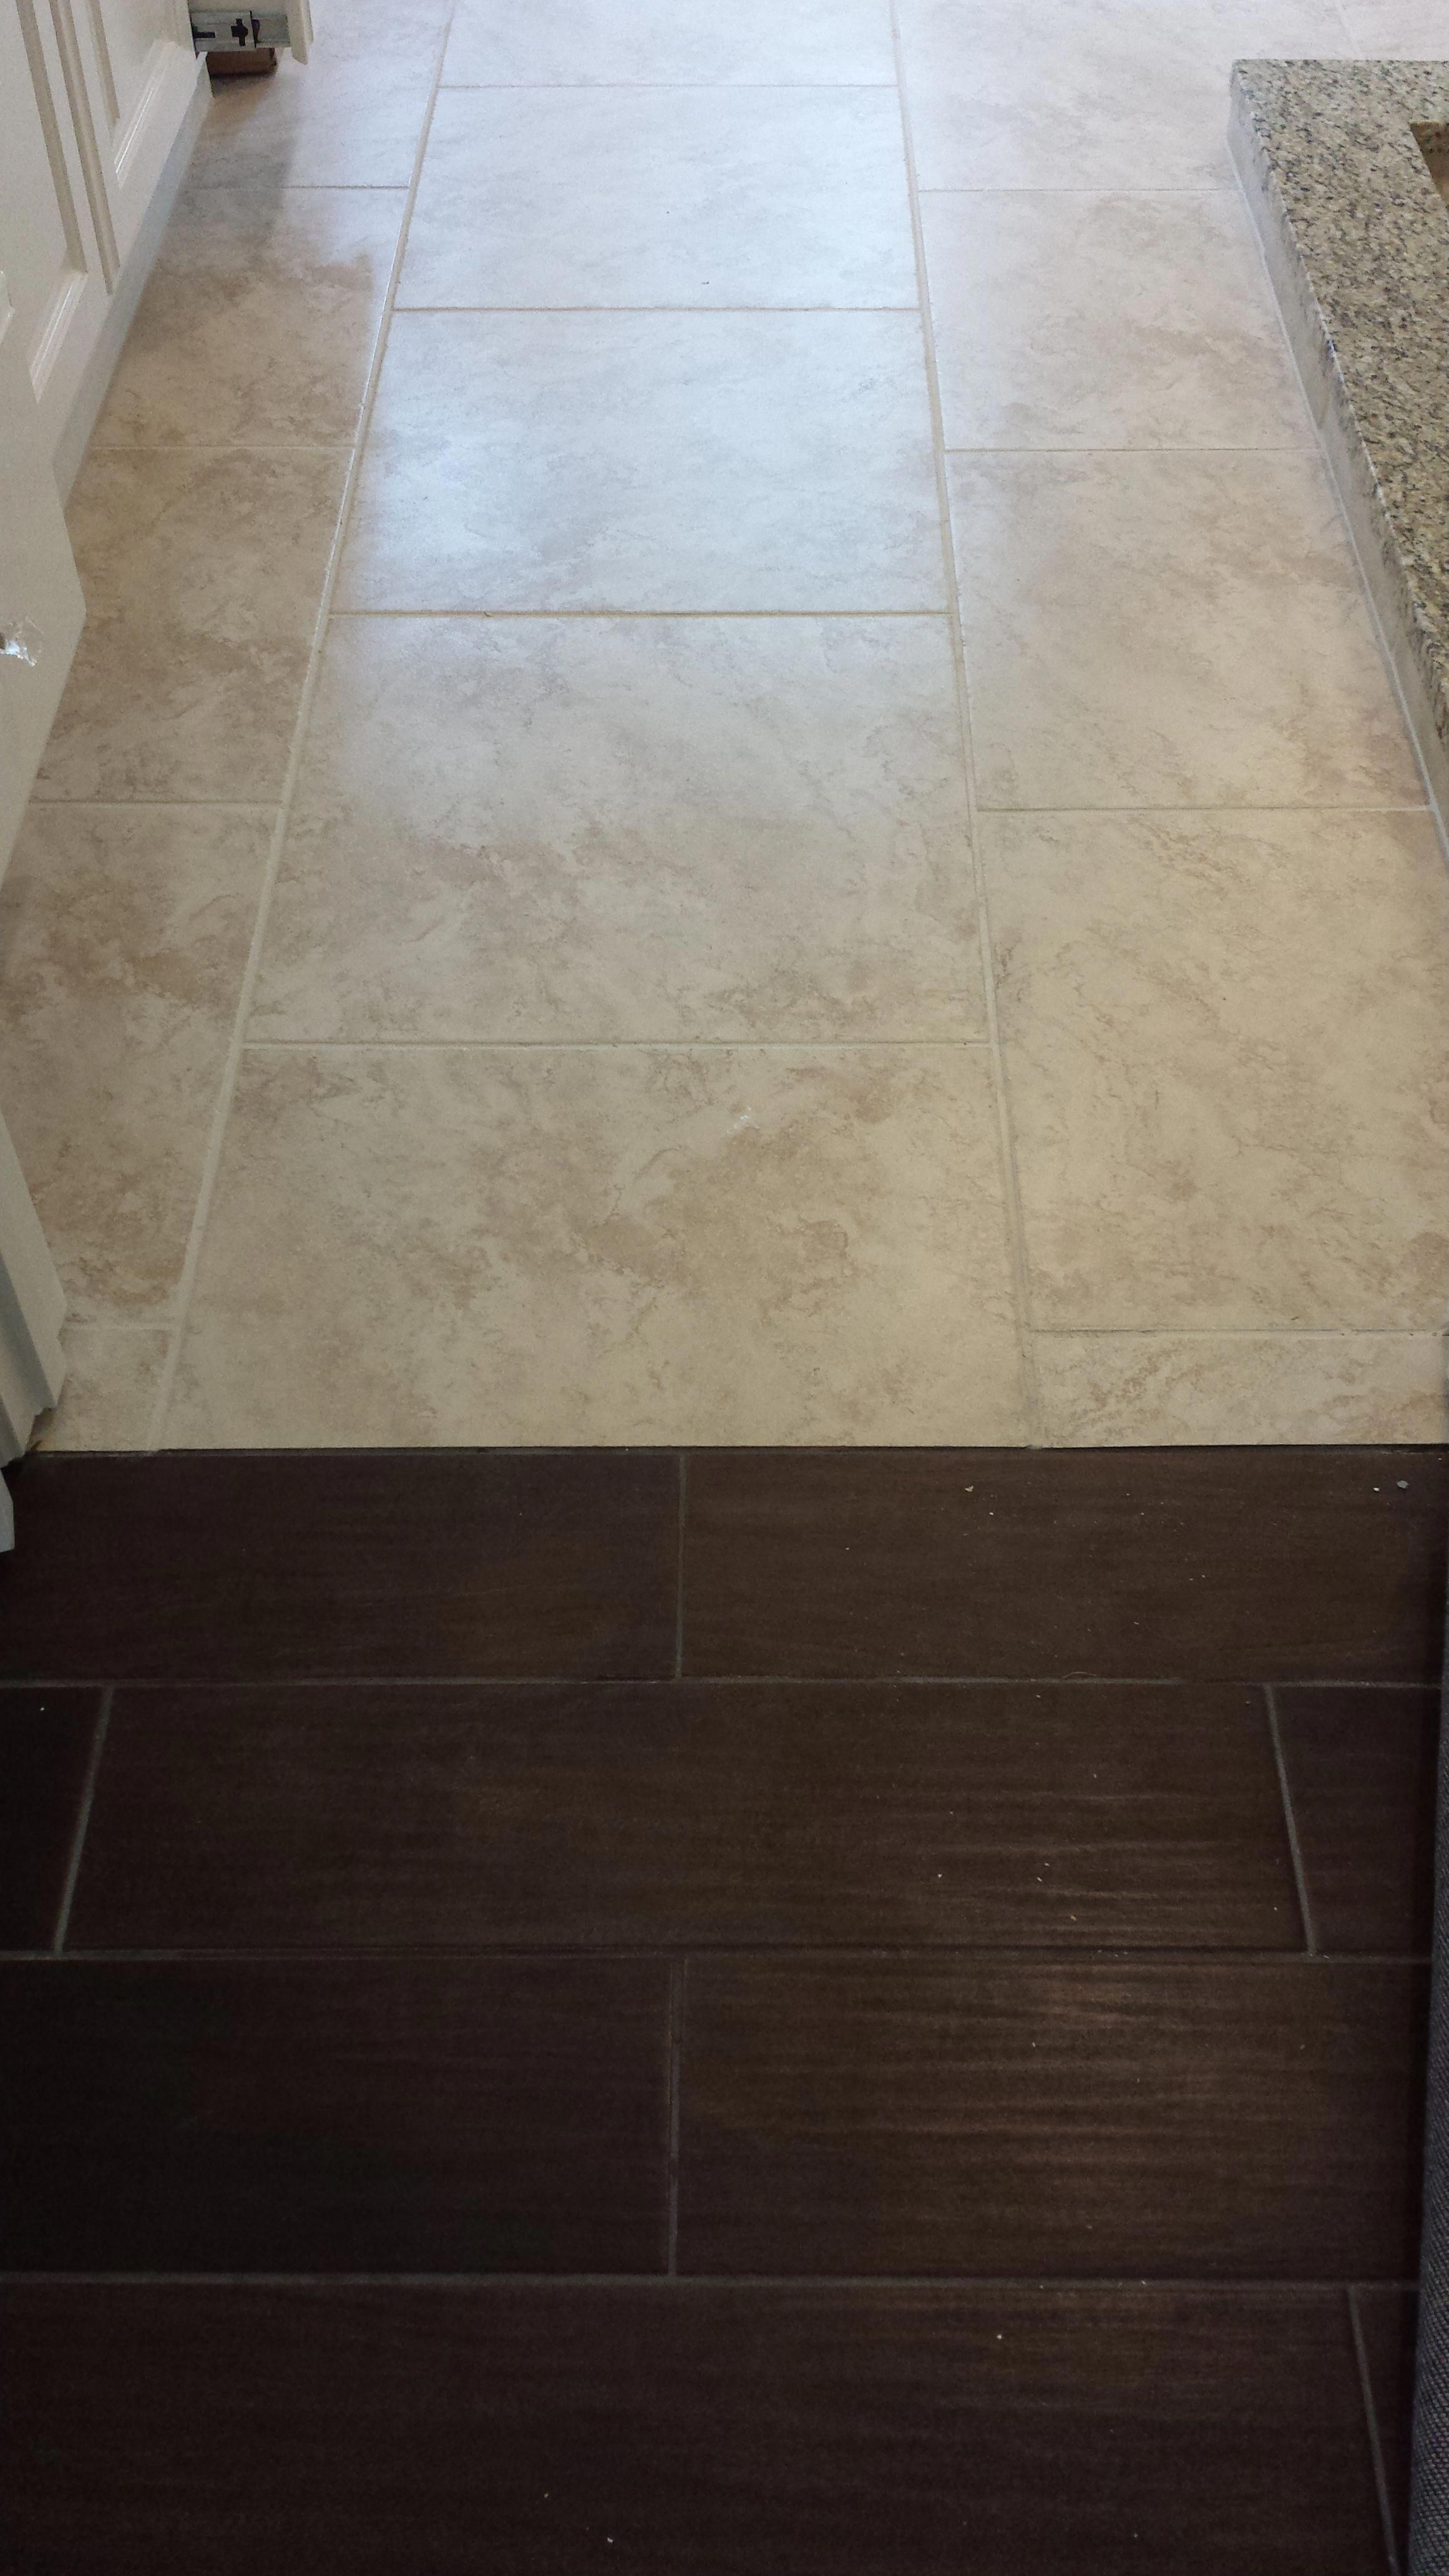 Nice transition from porcelain floor that looks like wood in the